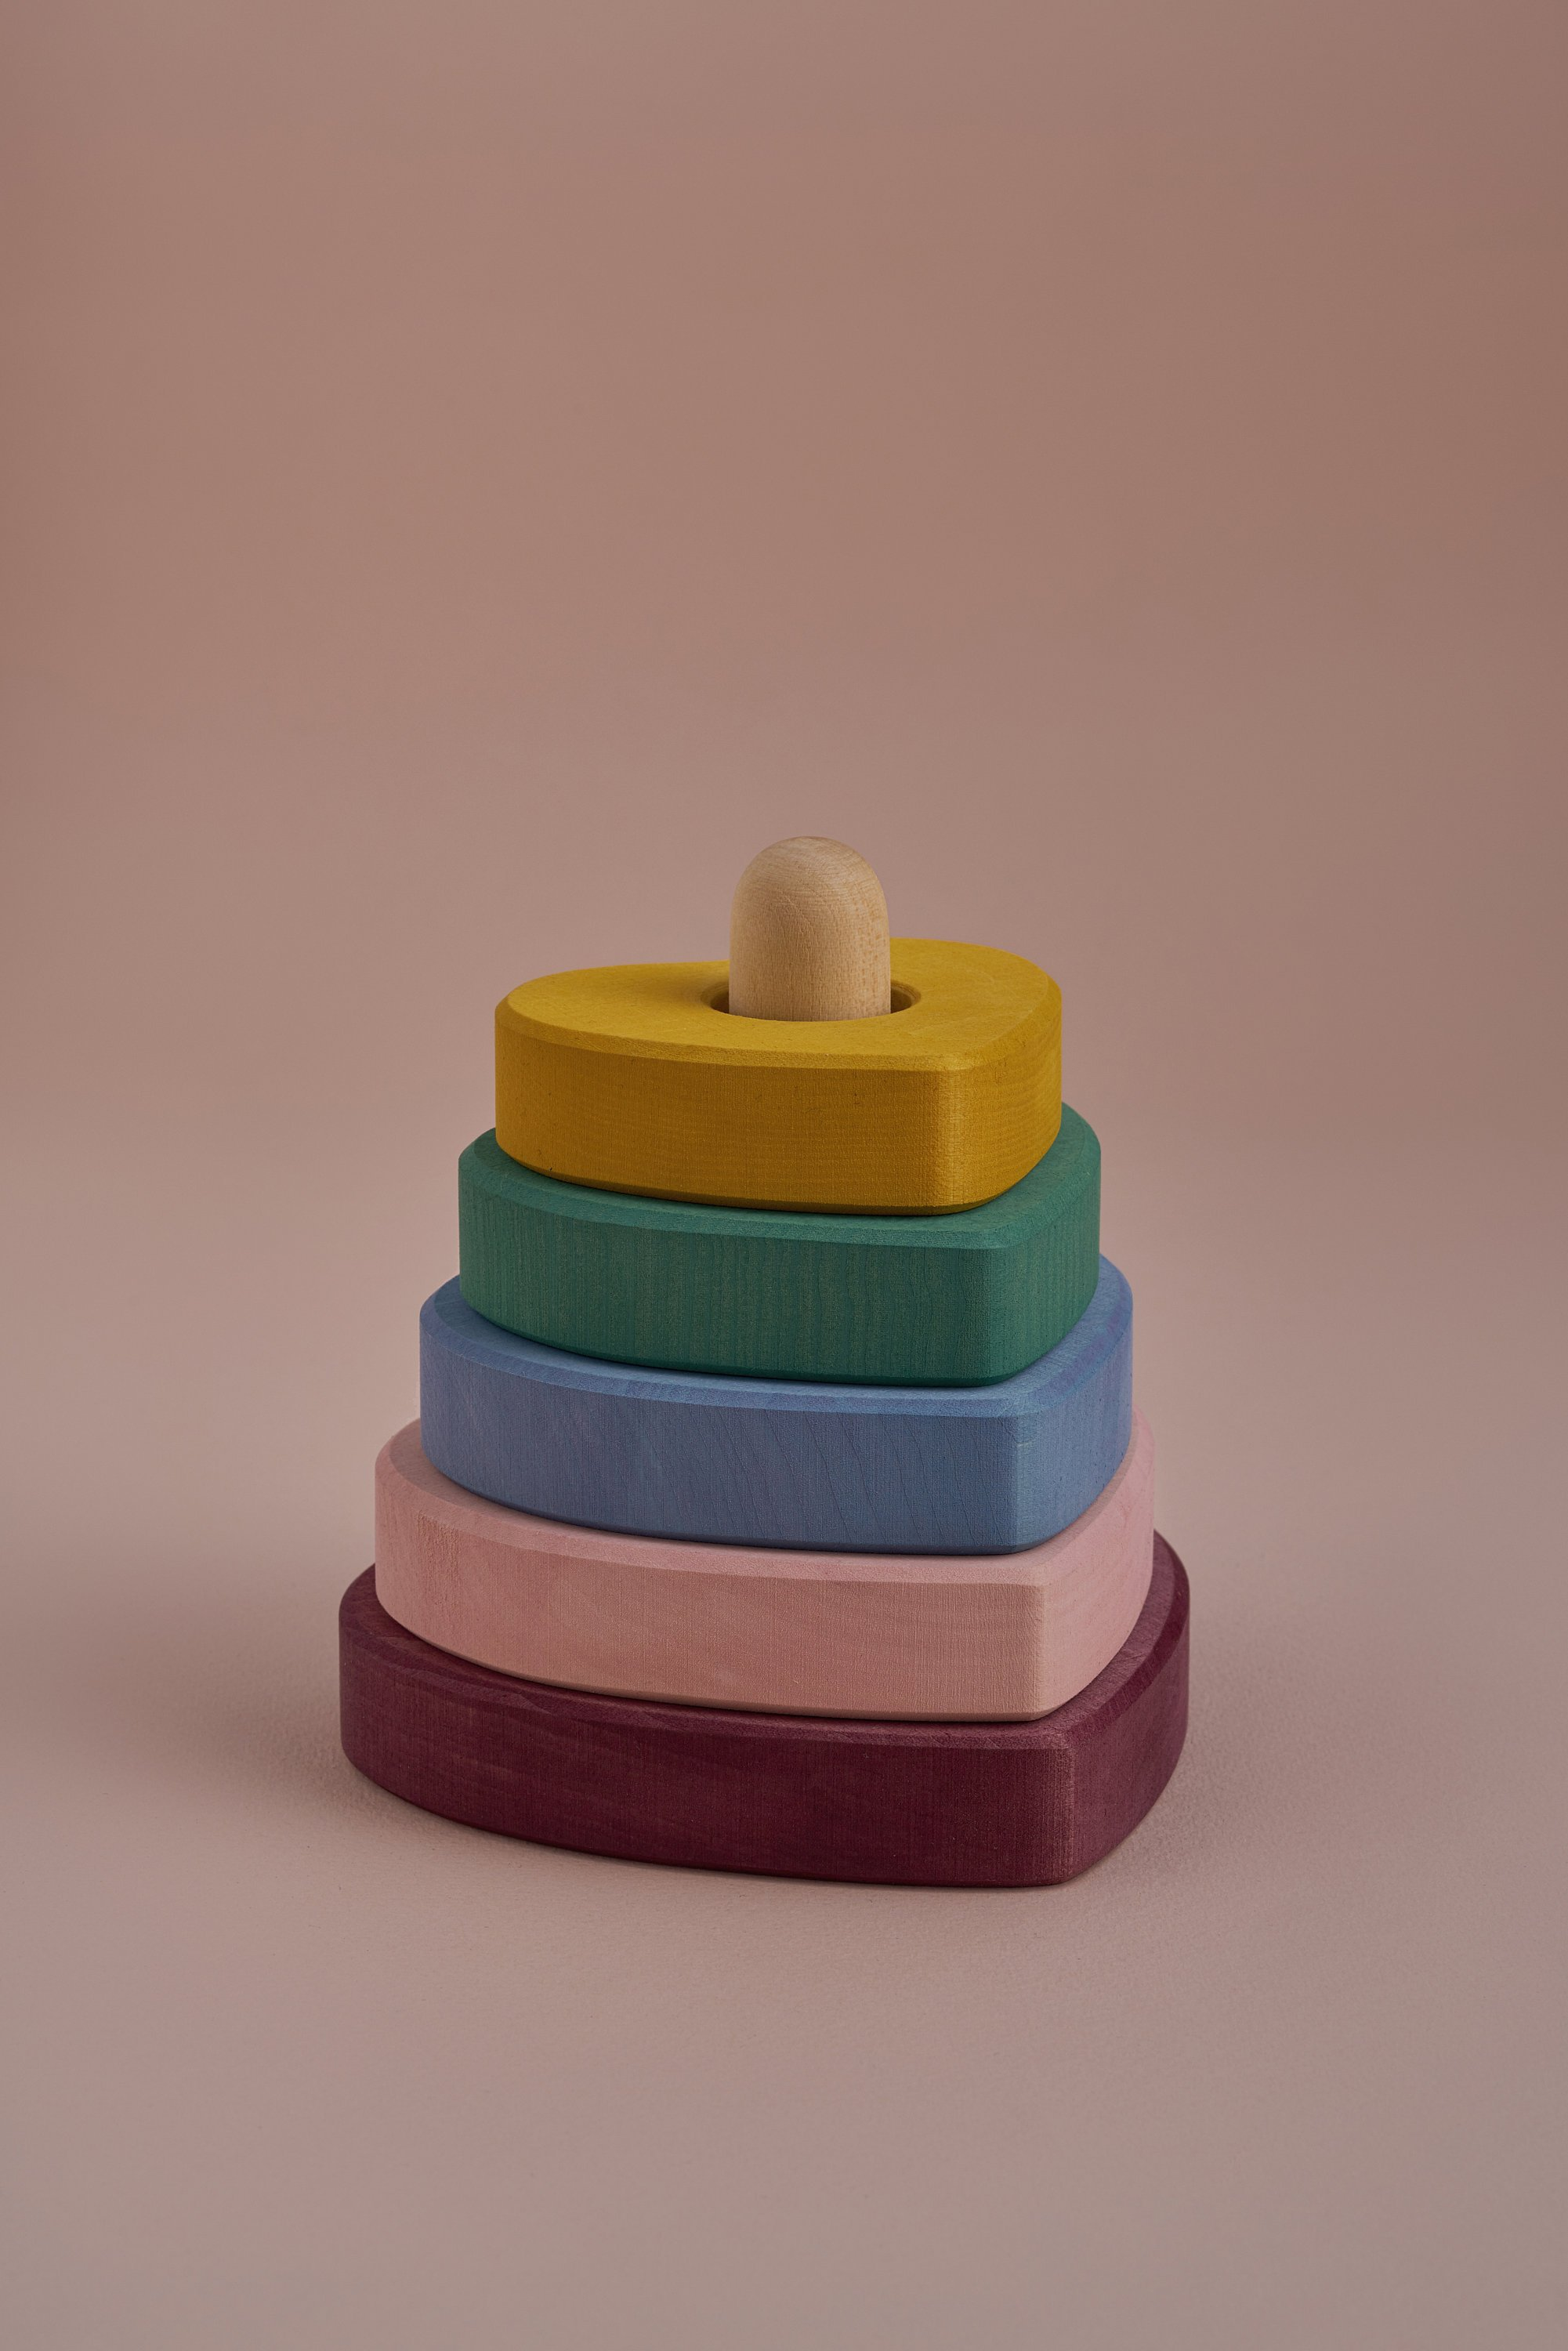 Stacking Rainbow Hearts Wooden Toy Set for Kids